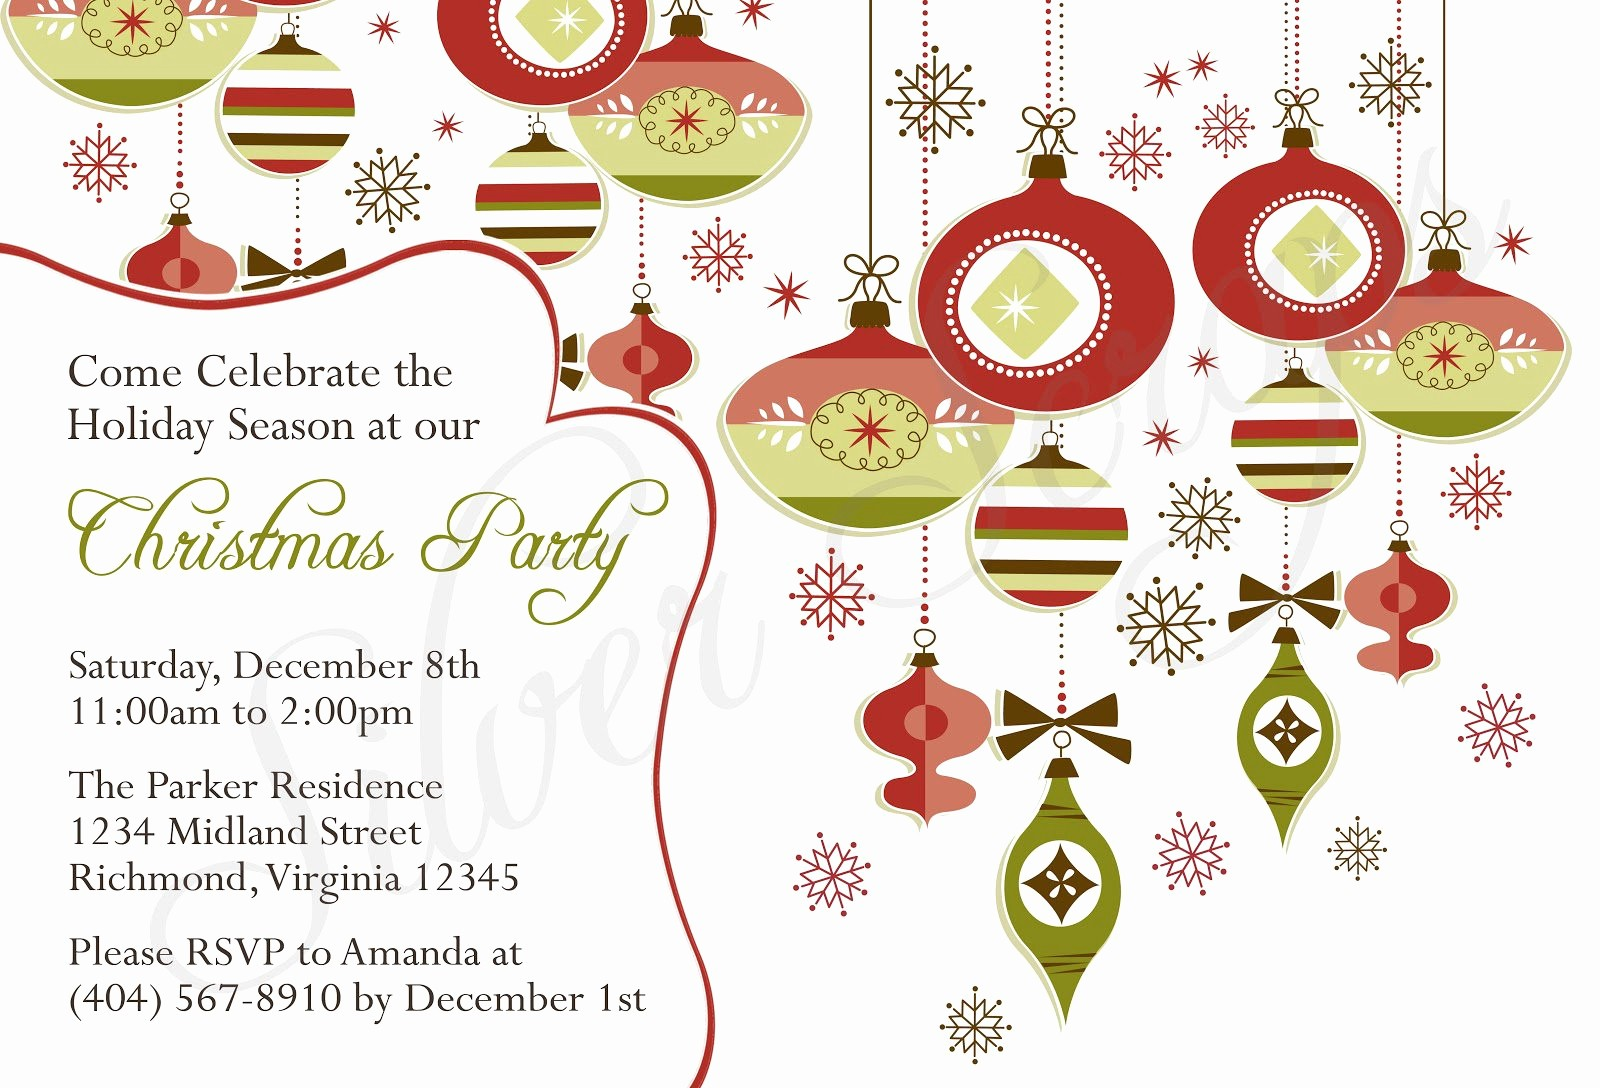 Christmas Party Invite Free Template Lovely Religious Christmas Invitation Templates